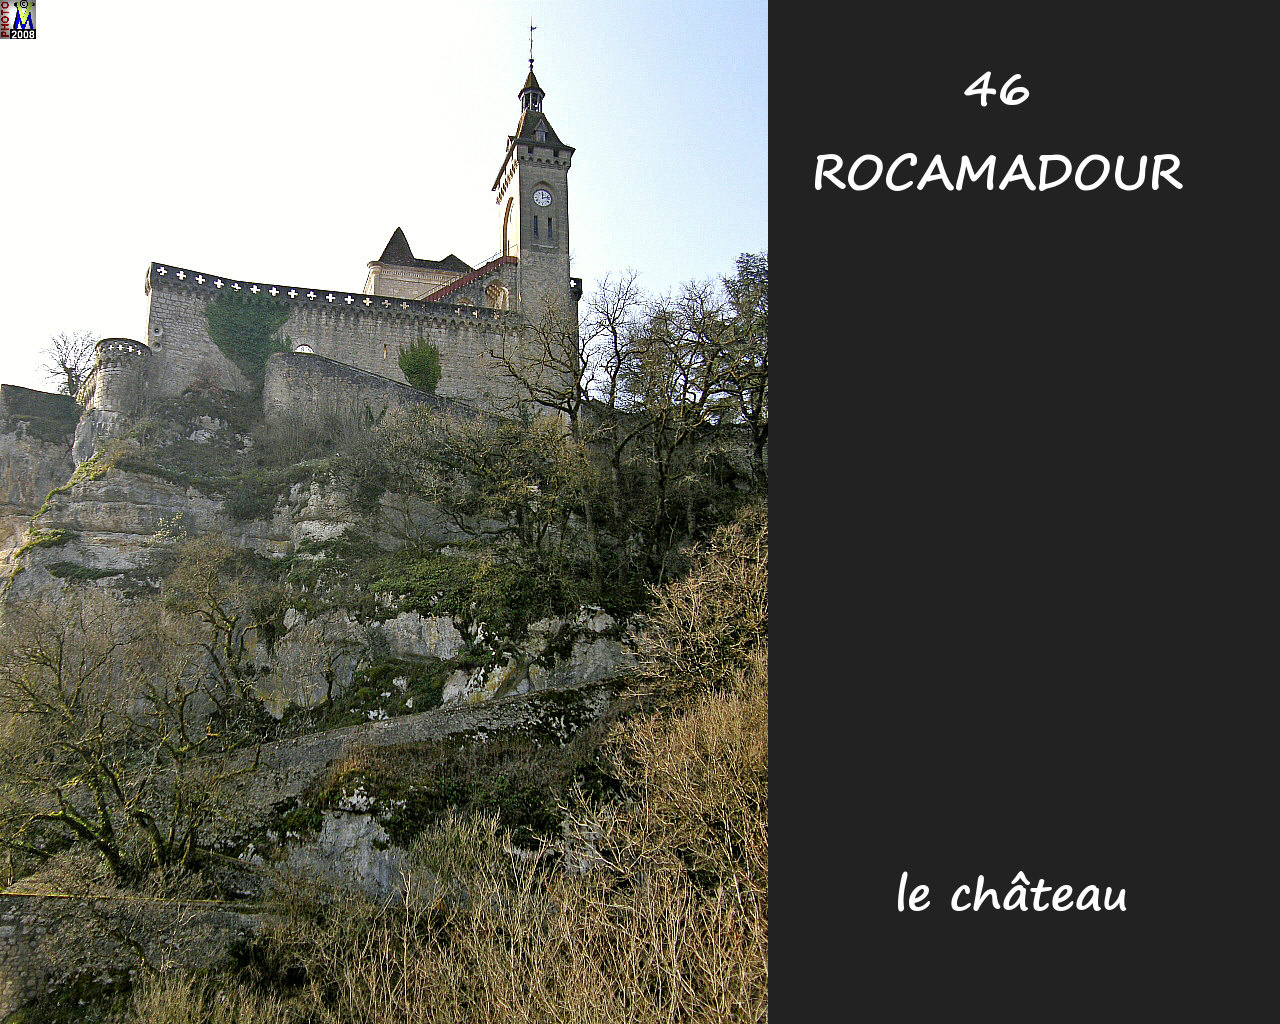 46ROCAMADOUR_chateau_108.jpg